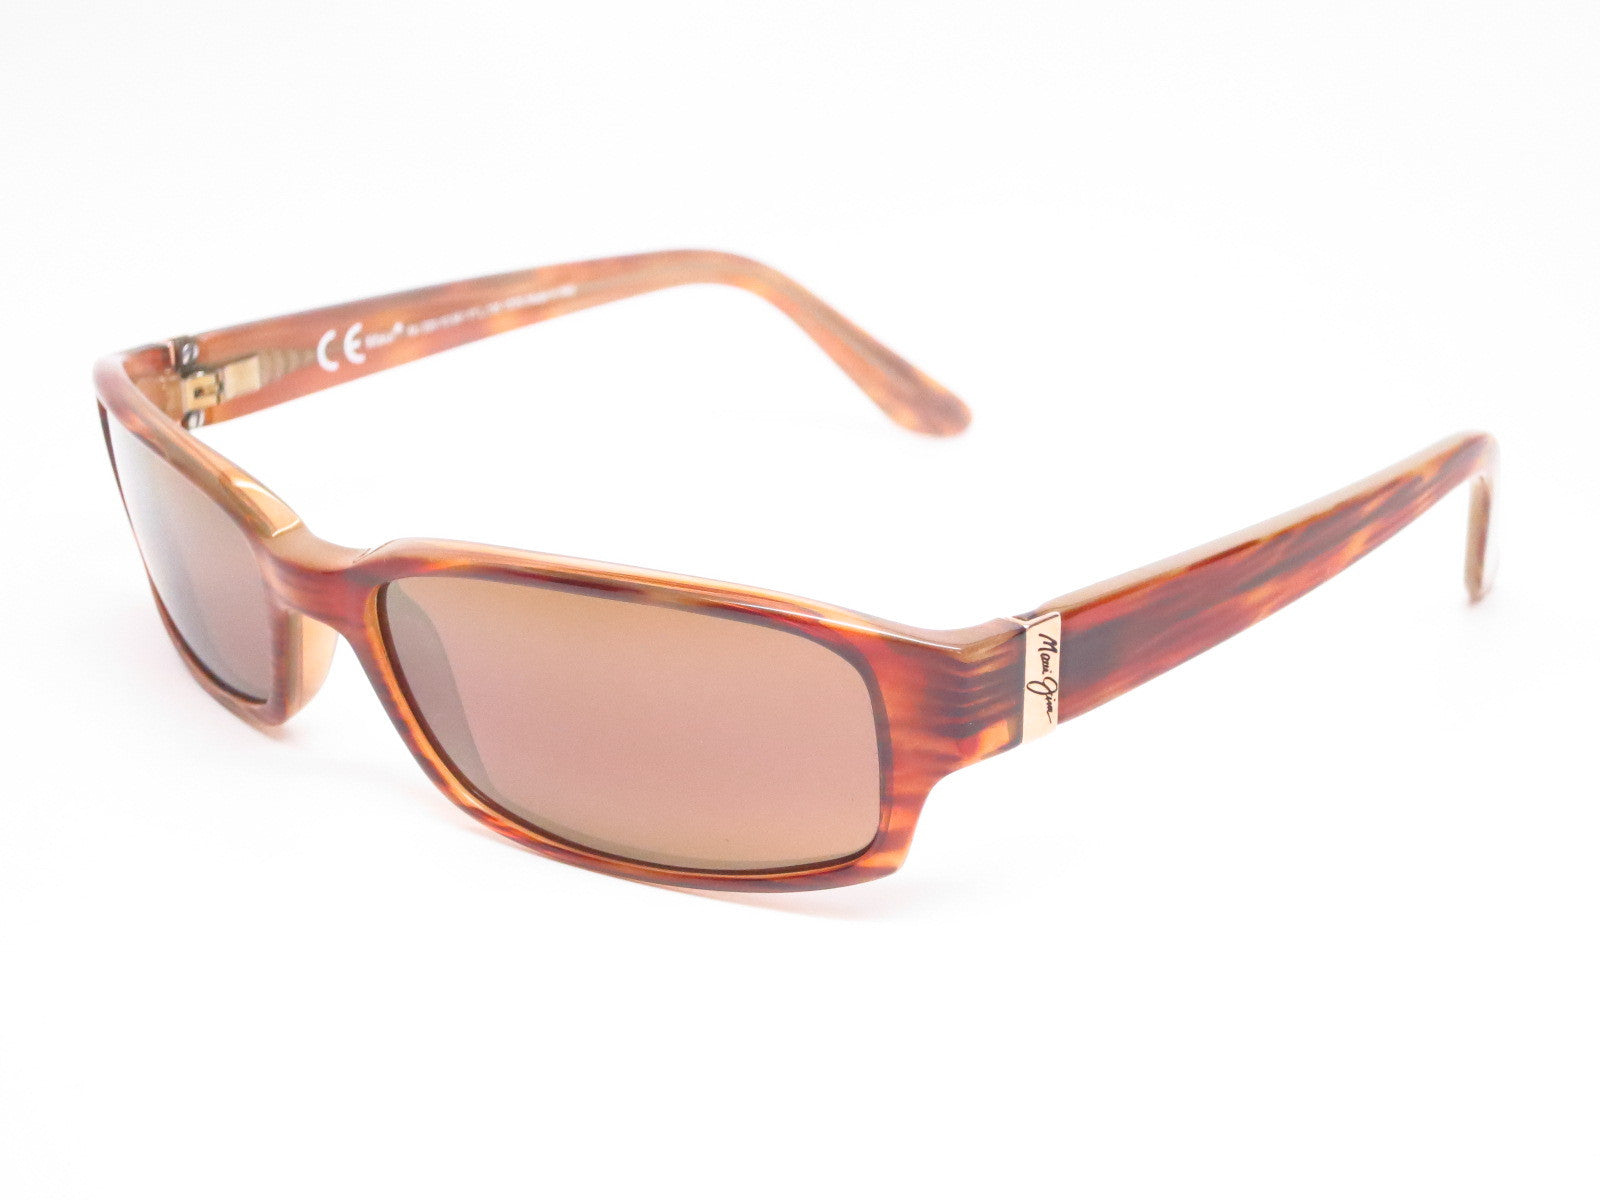 fe233551e09 Maui Jim Atoll MJ H220-10 Tortoise Polarized Sunglasses - Eye Heart Shades  - Maui ...